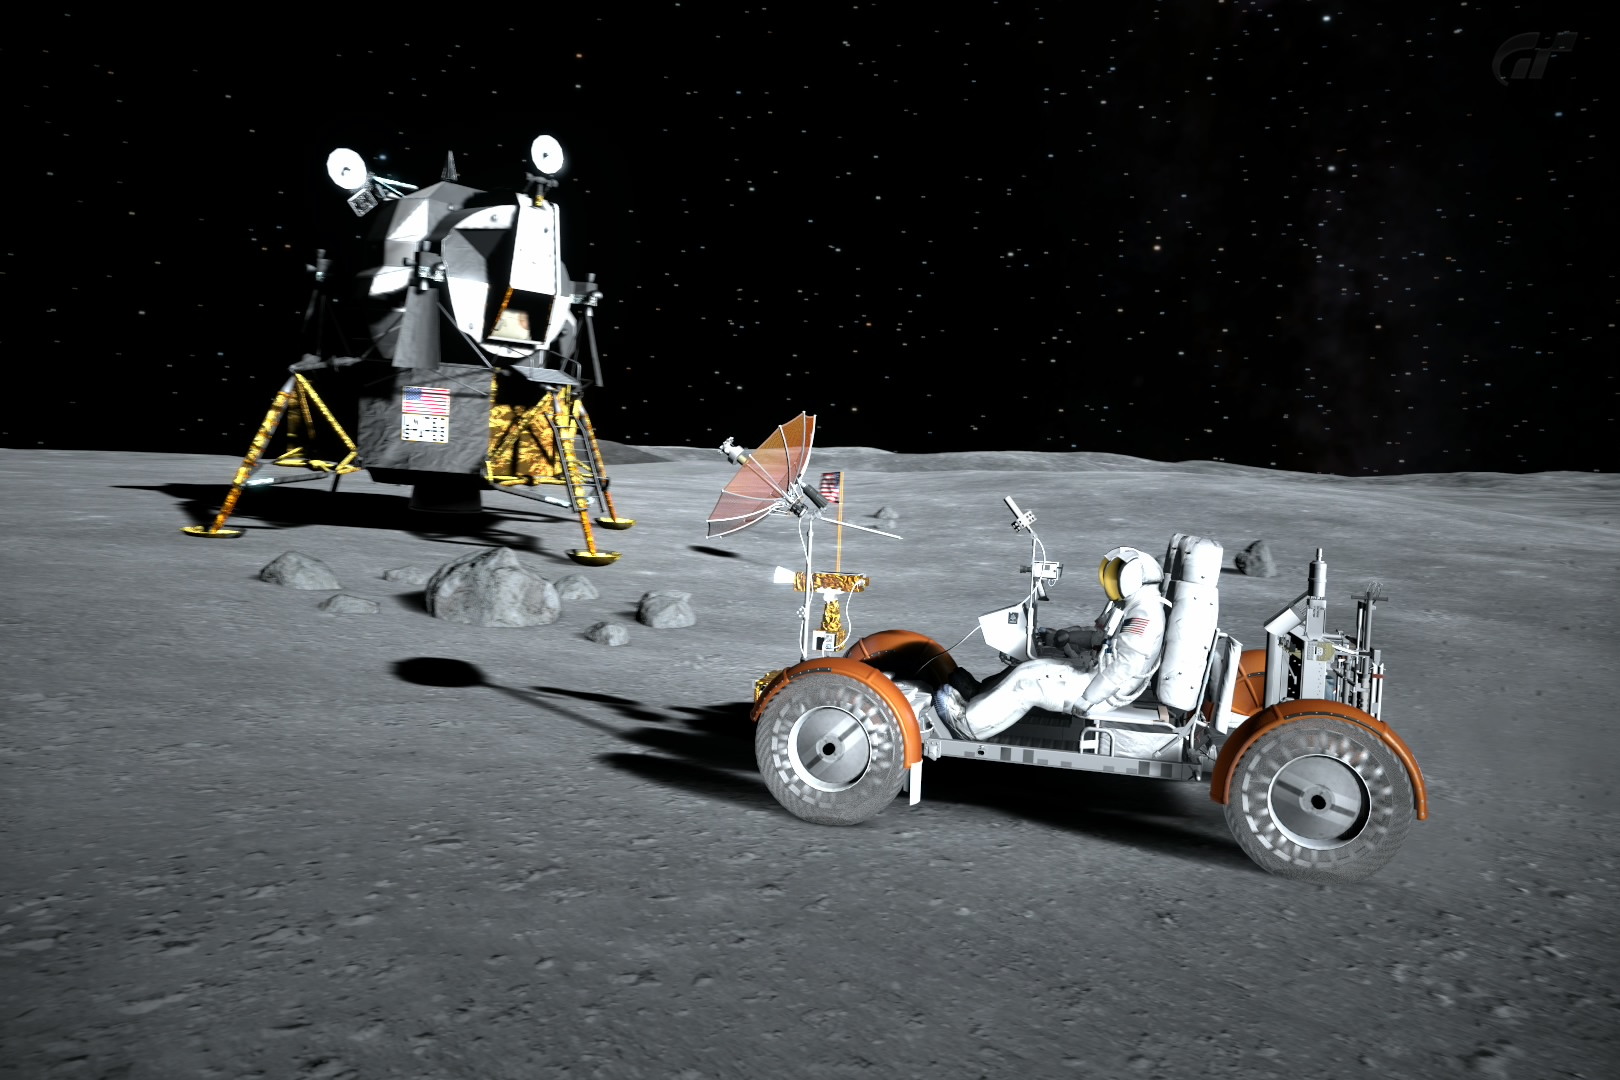 Moon 3D The Lunar Surface Comes to Life Jim Bell